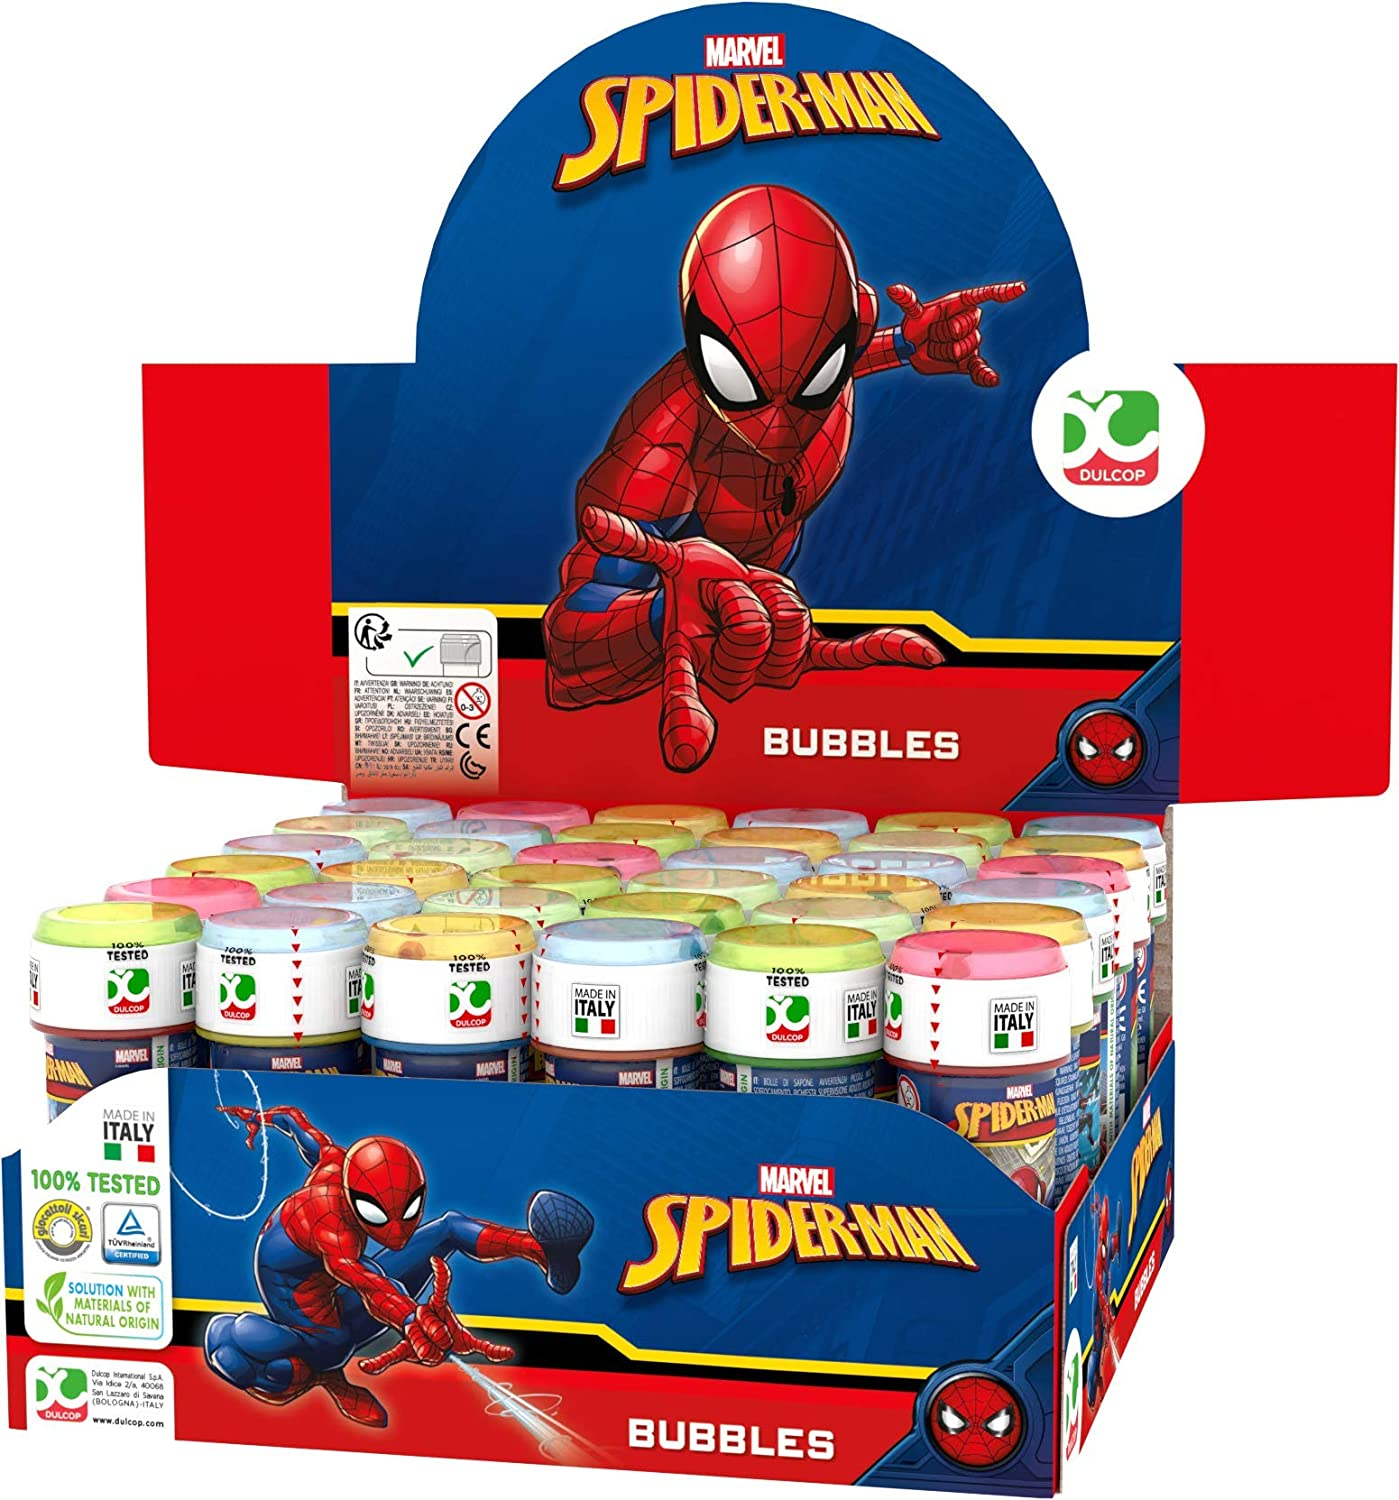 ColorBaby - Caja pomperos Spiderman con 36 Unidades de 60 ml (22985)